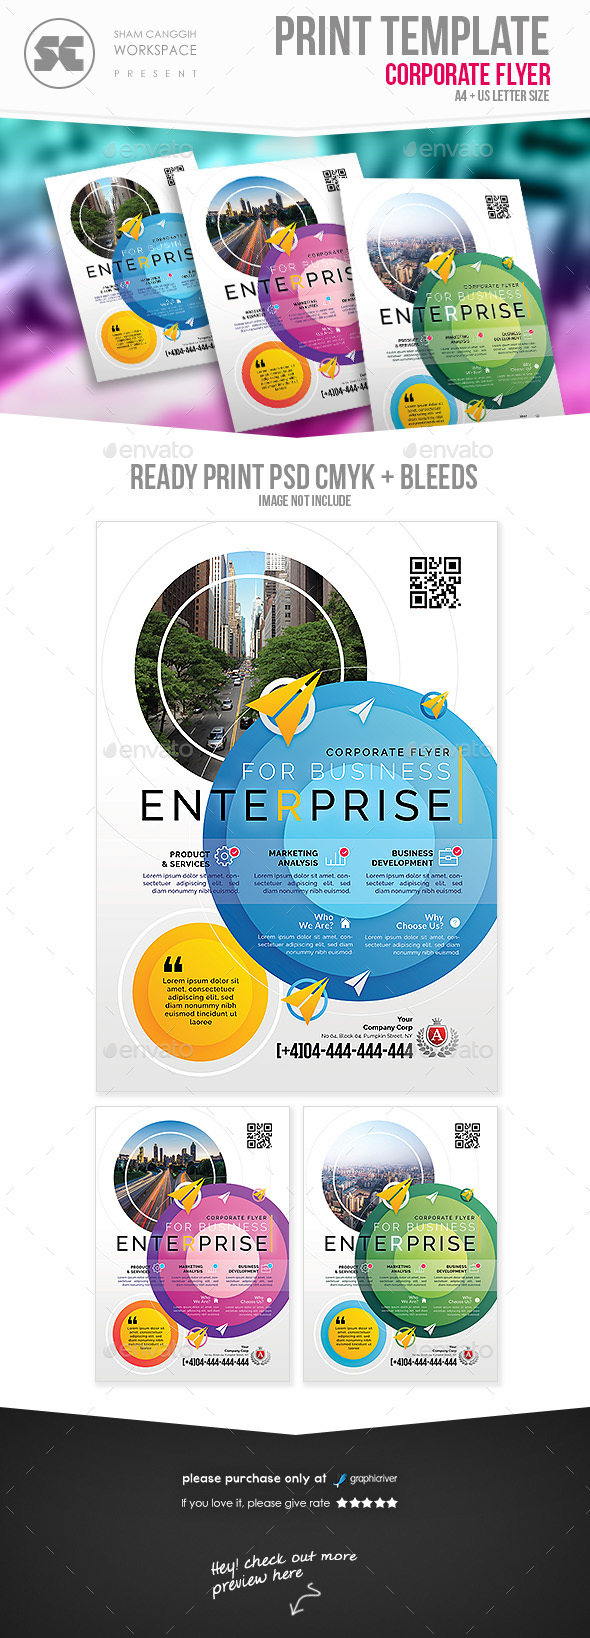 Professional Business Flyer - Corporate Flyers